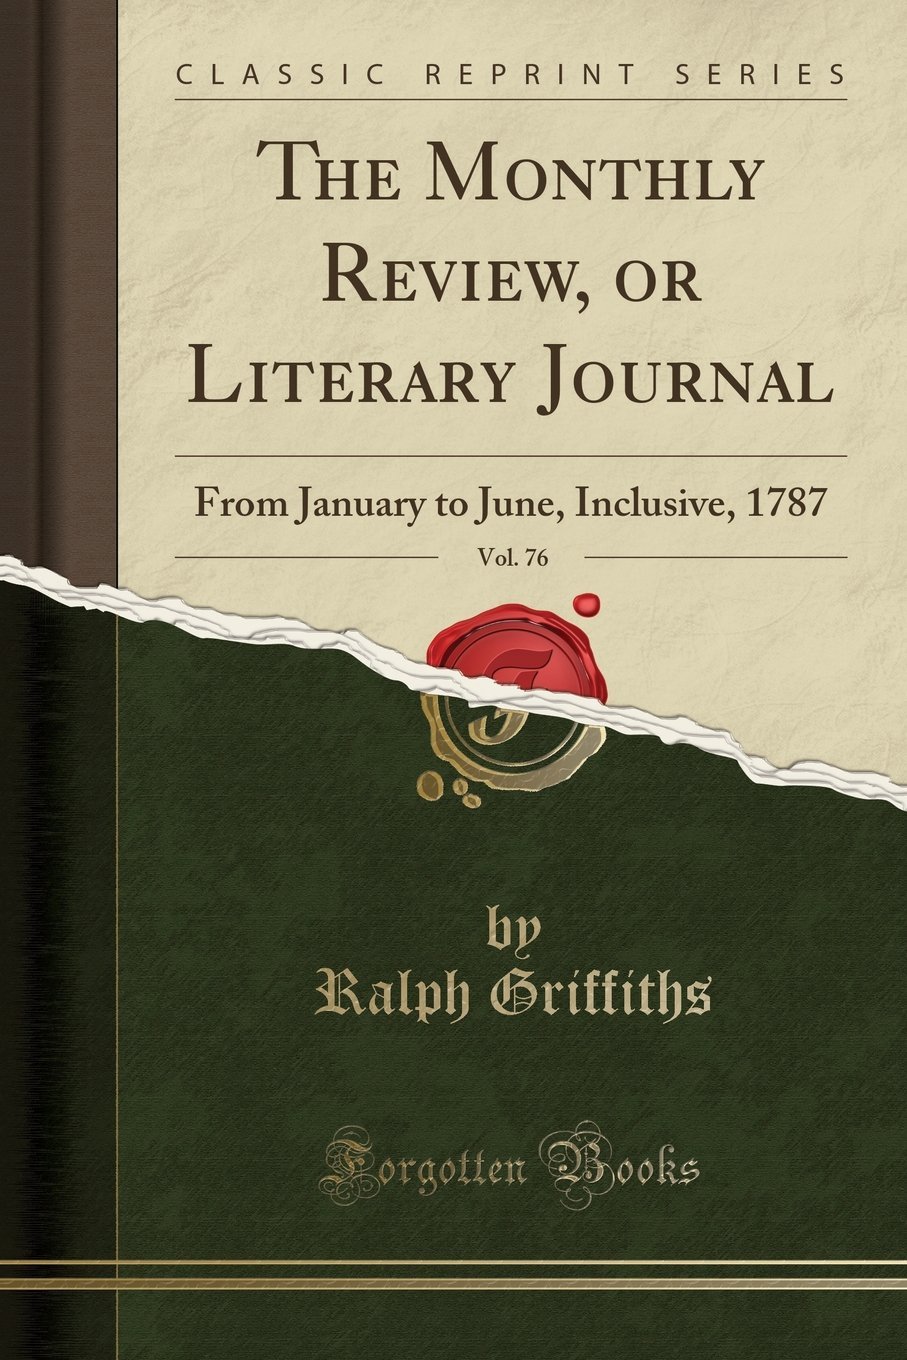 Read Online The Monthly Review, or Literary Journal, Vol. 76: From January to June, Inclusive, 1787 (Classic Reprint) PDF